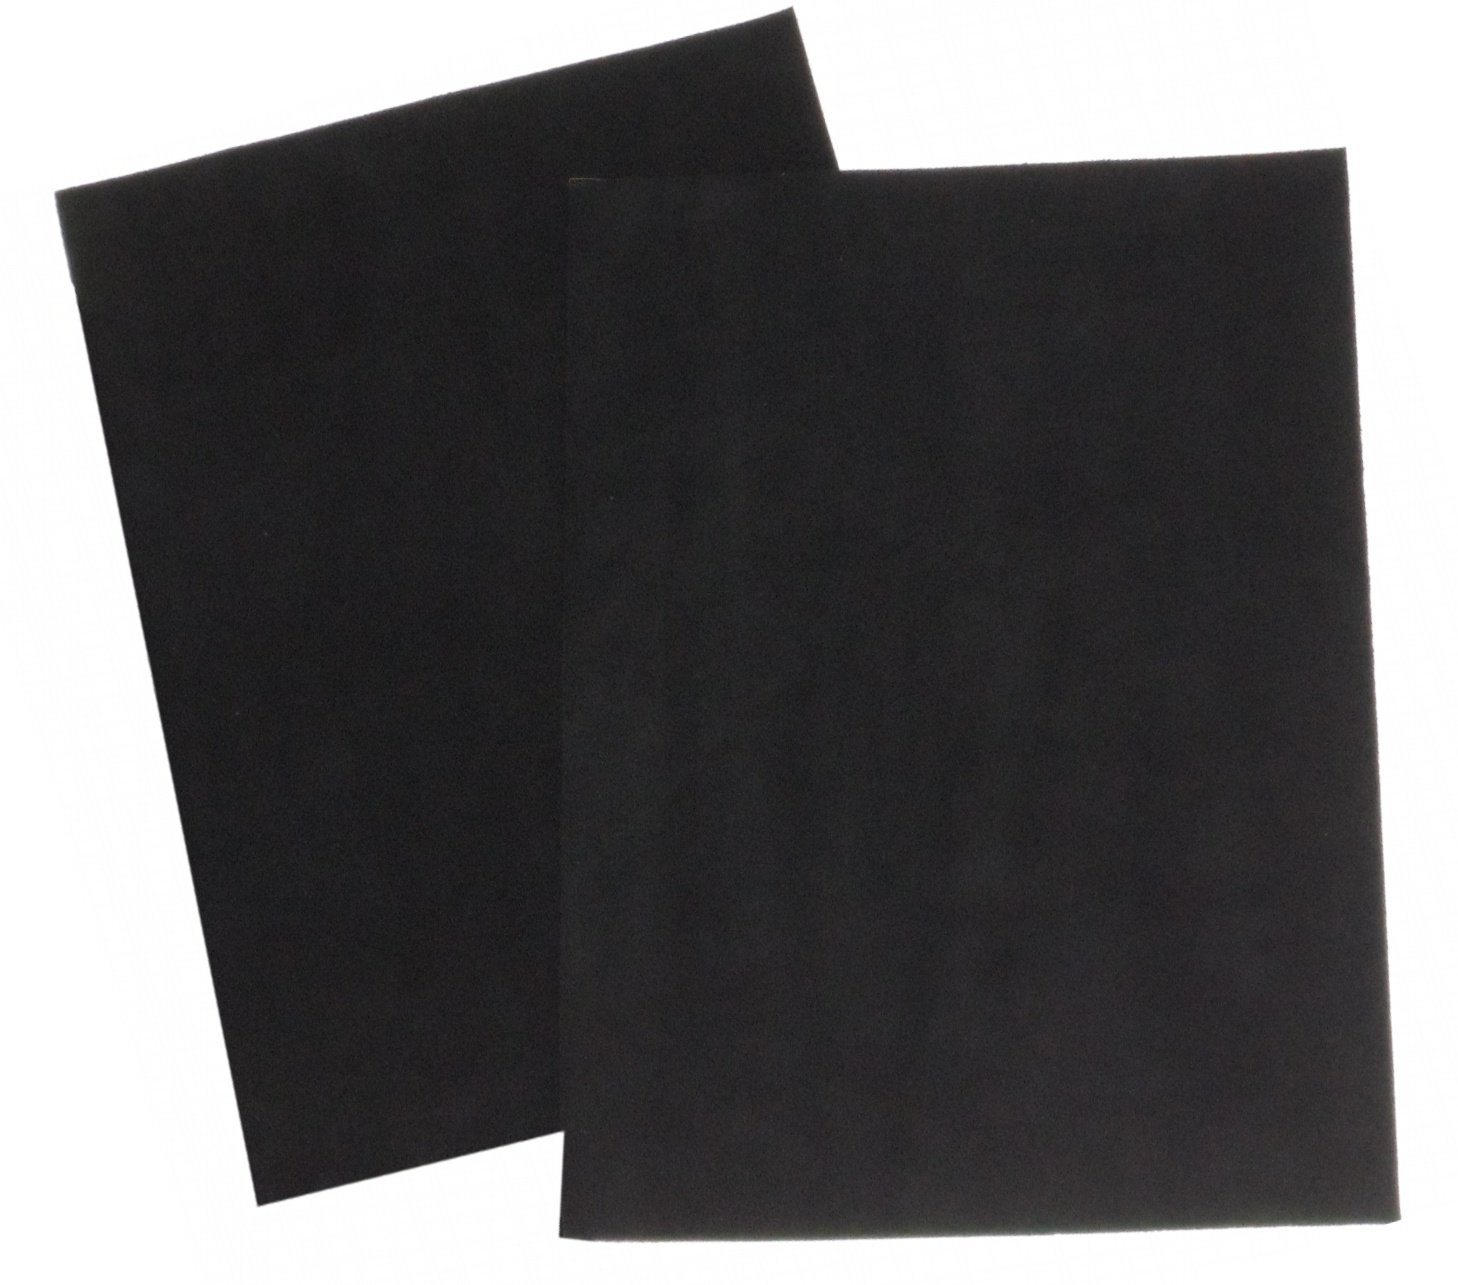 """Premium Quality Suede Sheets 8.5""""x12"""" with Super-Strong self-Adhesive Backing. Ideal for Making Peel-and-Stick (self-Stick, Stick-on) Soles for Dance Shoes, [SUEDE-DIY-r01]."""